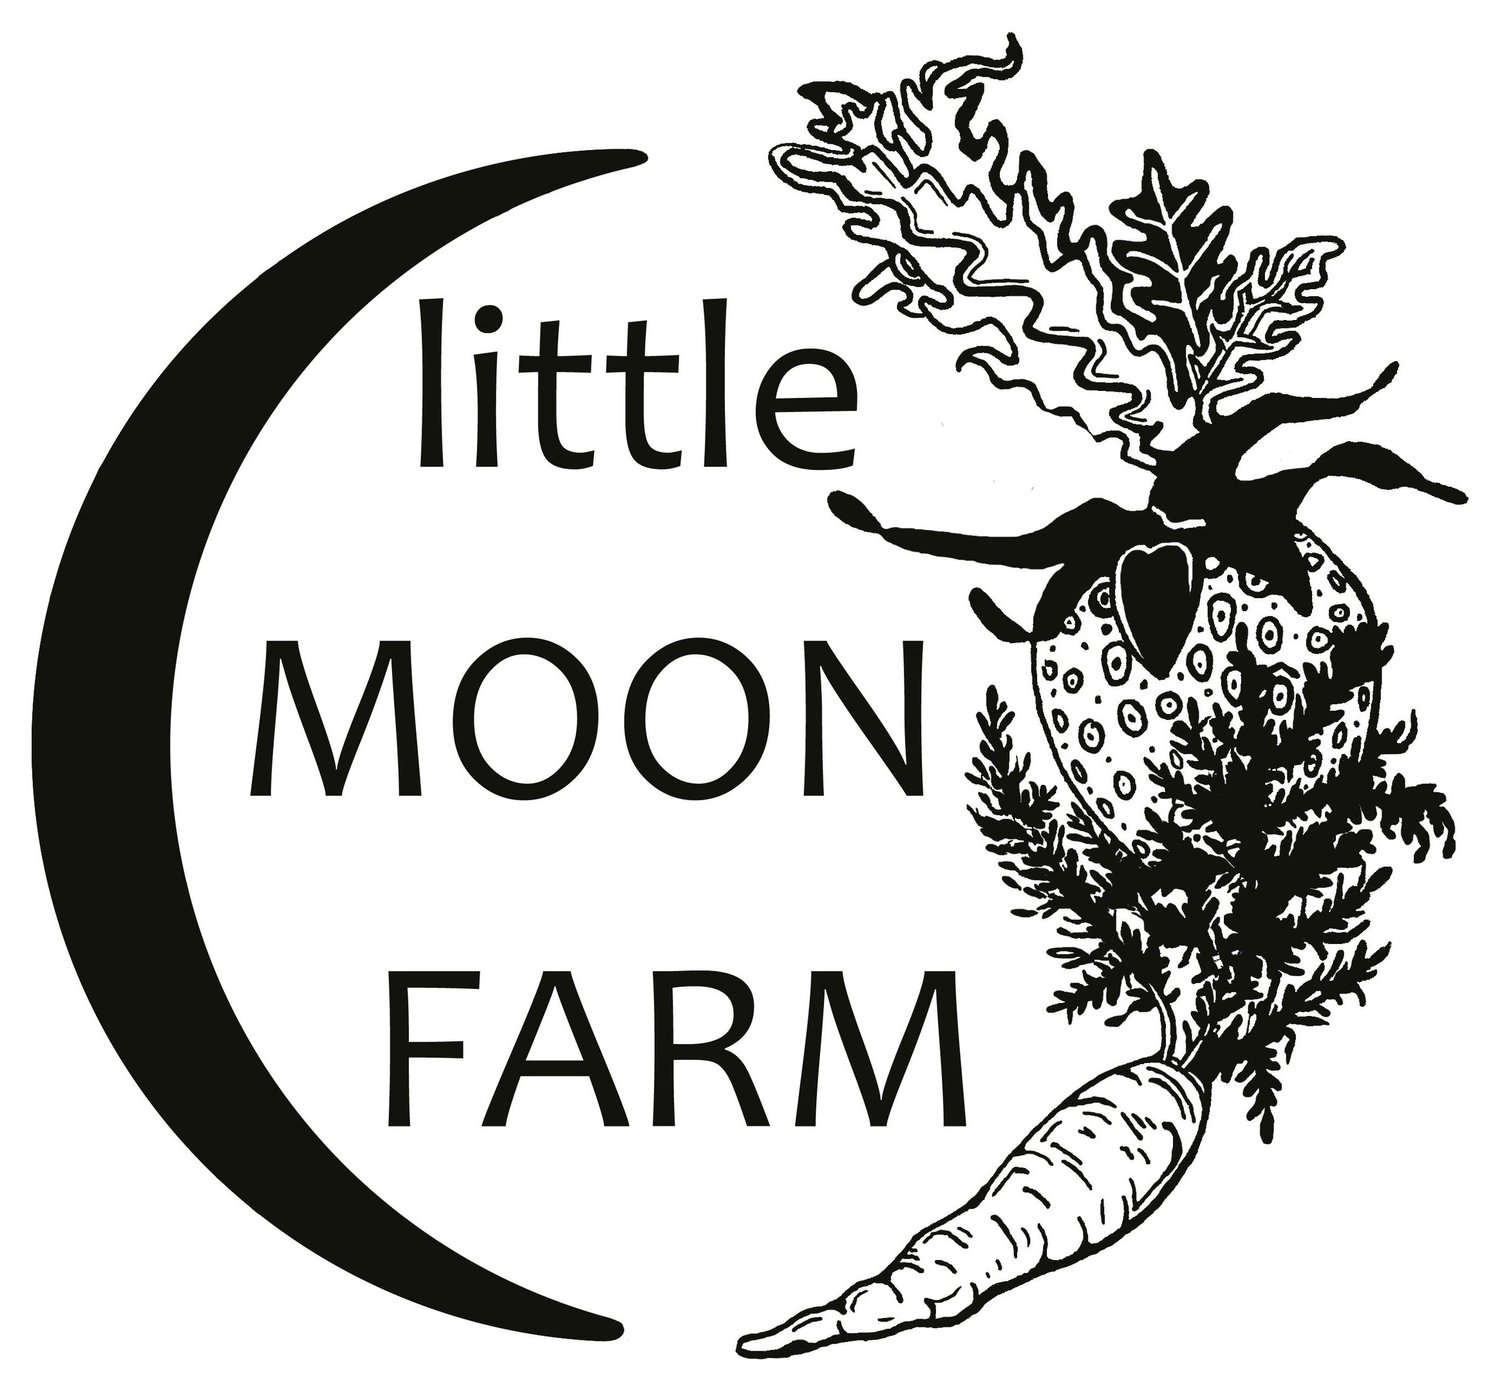 Little Moon Farm